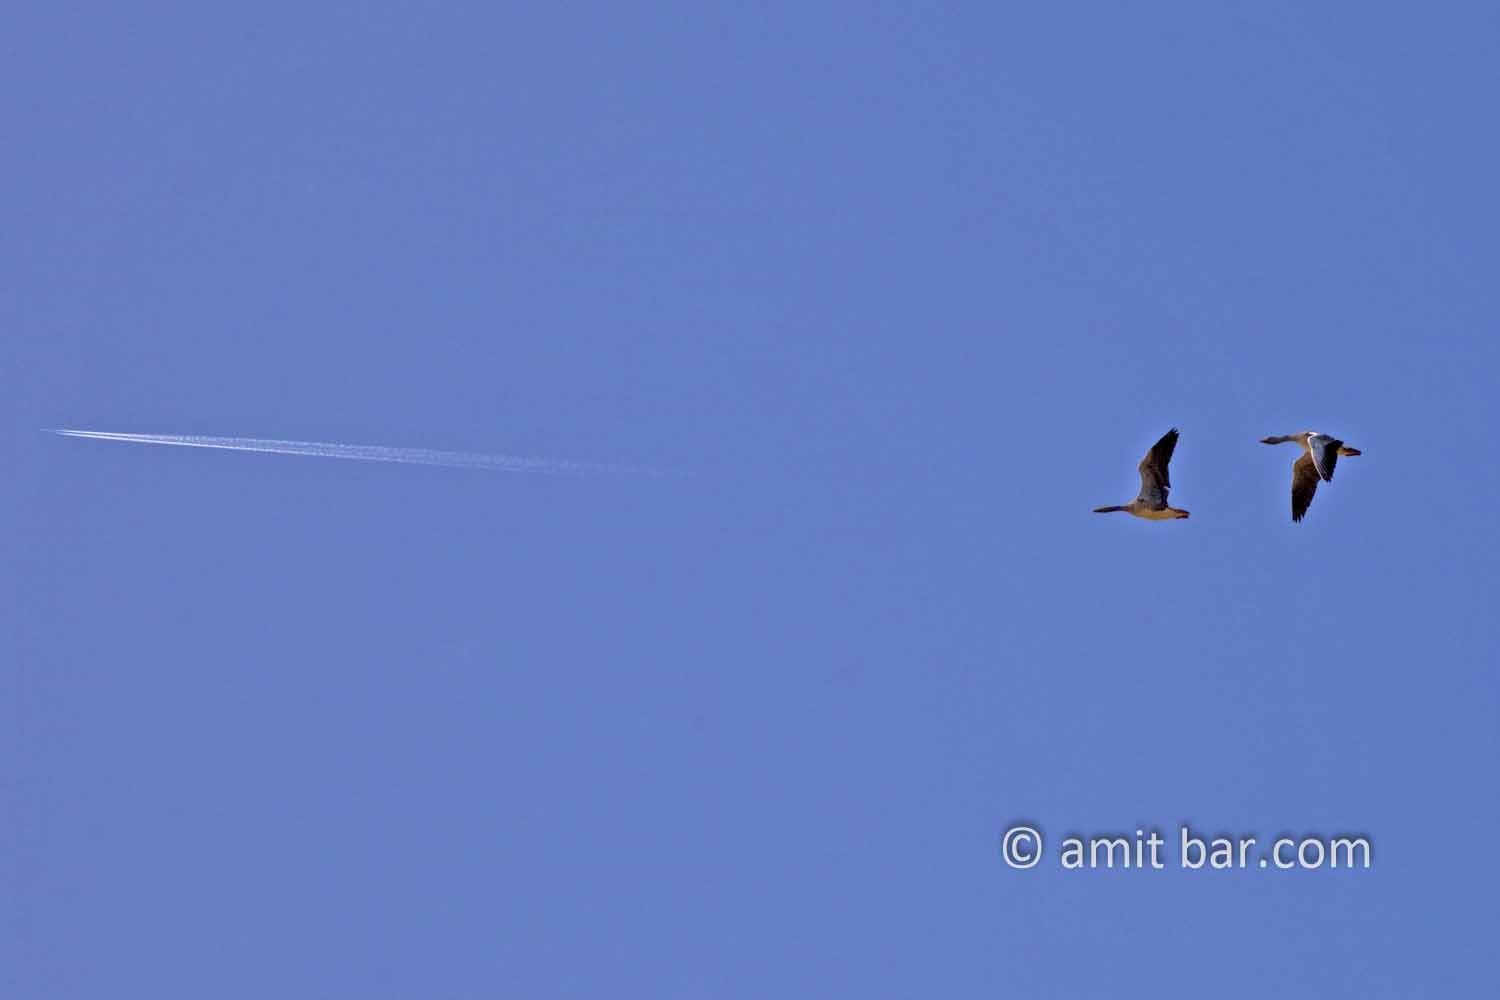 Leaving without a jetplane: Two geese flying behind an airplane